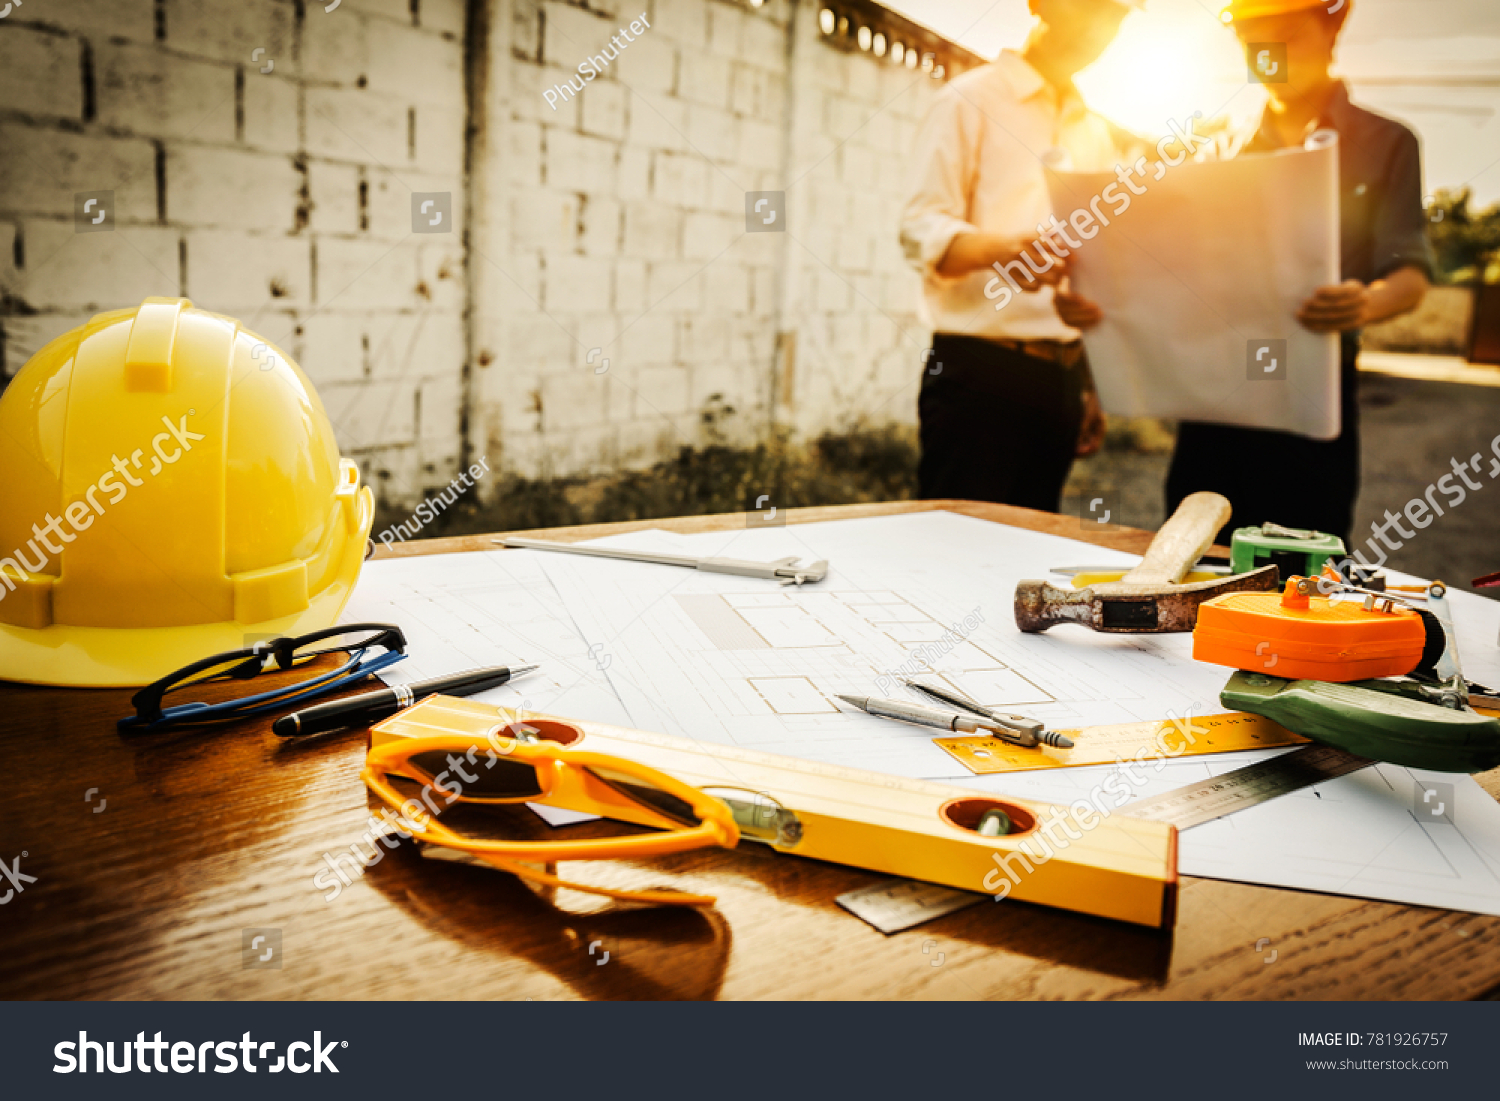 A desk of engineers who are studying the area for laying foundation of energy saving homes and raw material costs. #781926757